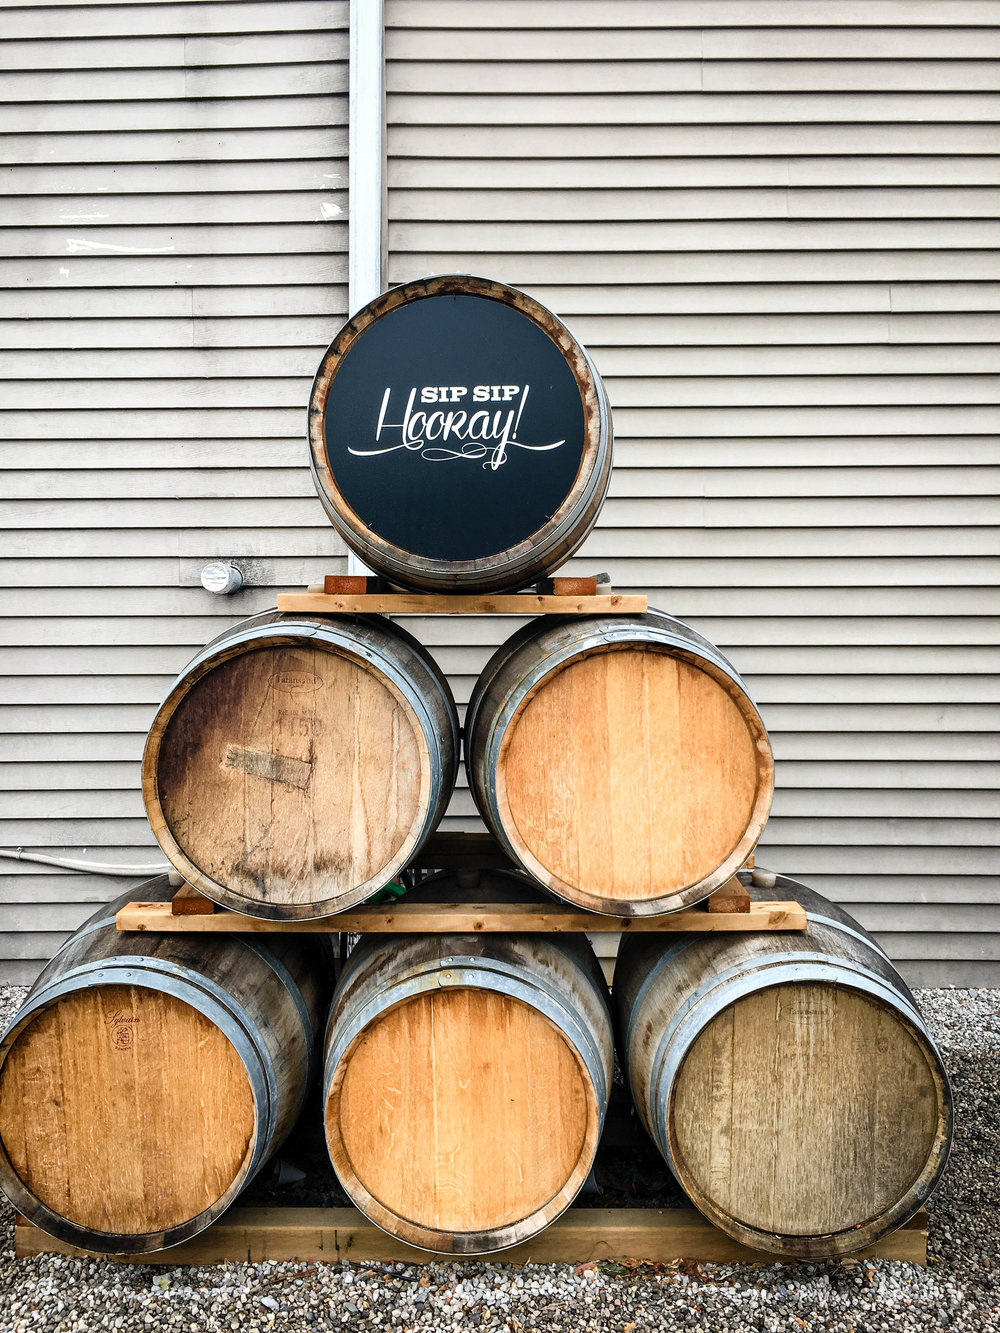 "Niagara on the Lake wine barrels with ""Hip hip hourray"" engravings"